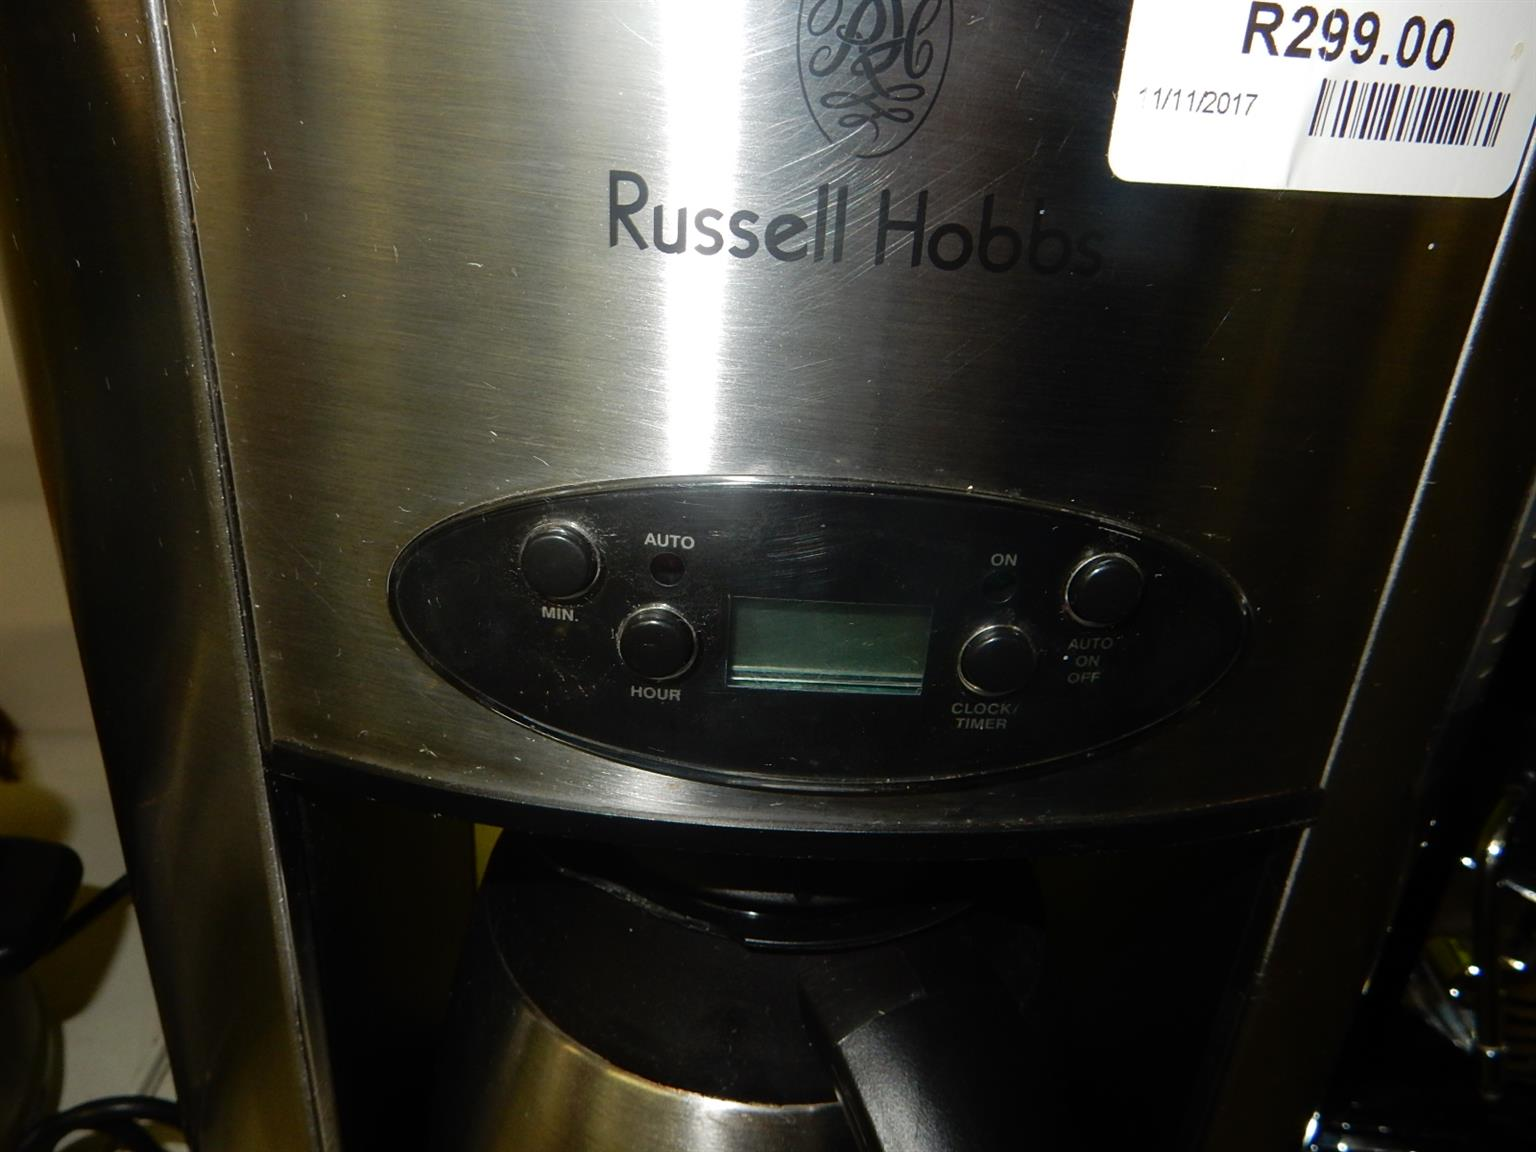 Russel Hobbs Coffee Machine